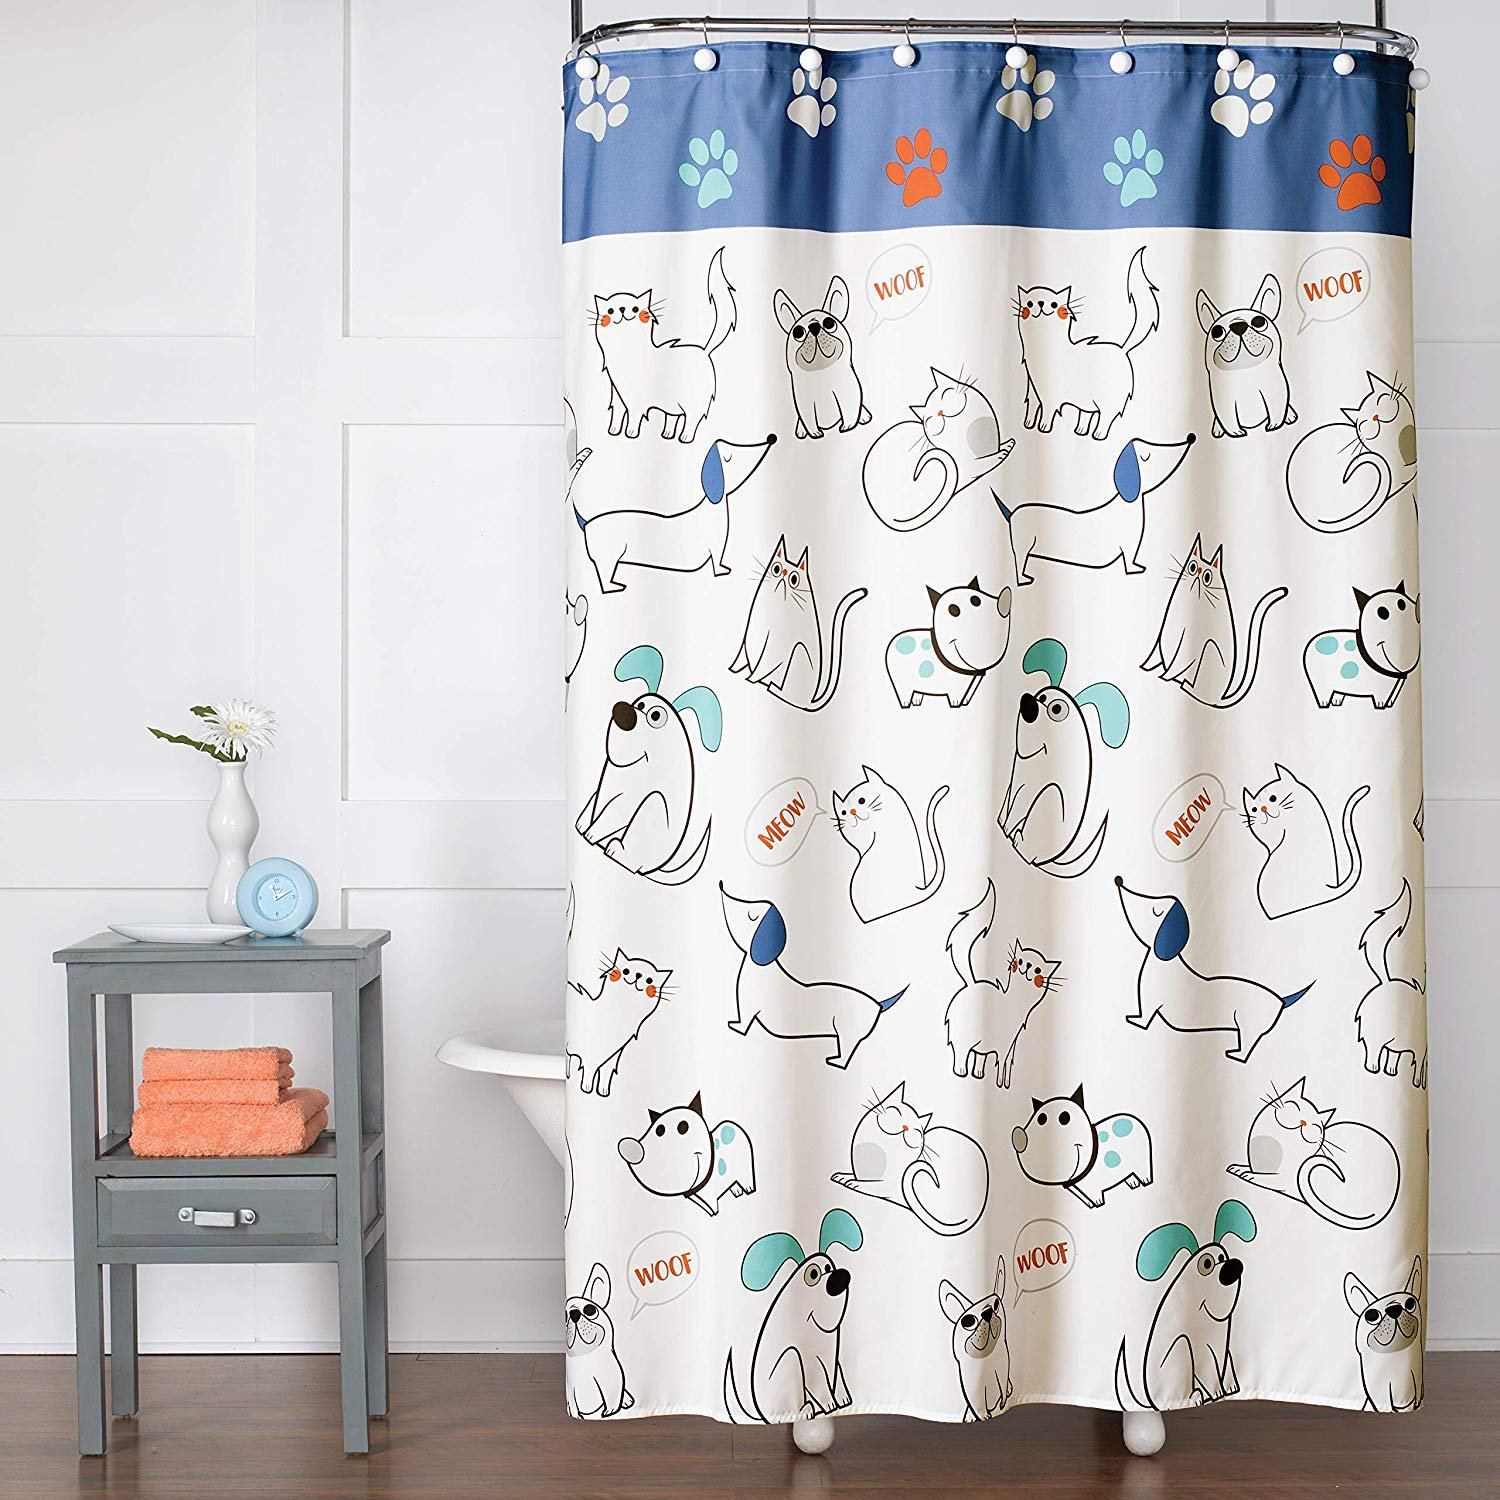 Fabric Shower Curtain By Saturday Knight Limited 100/% polyester Miami Beach